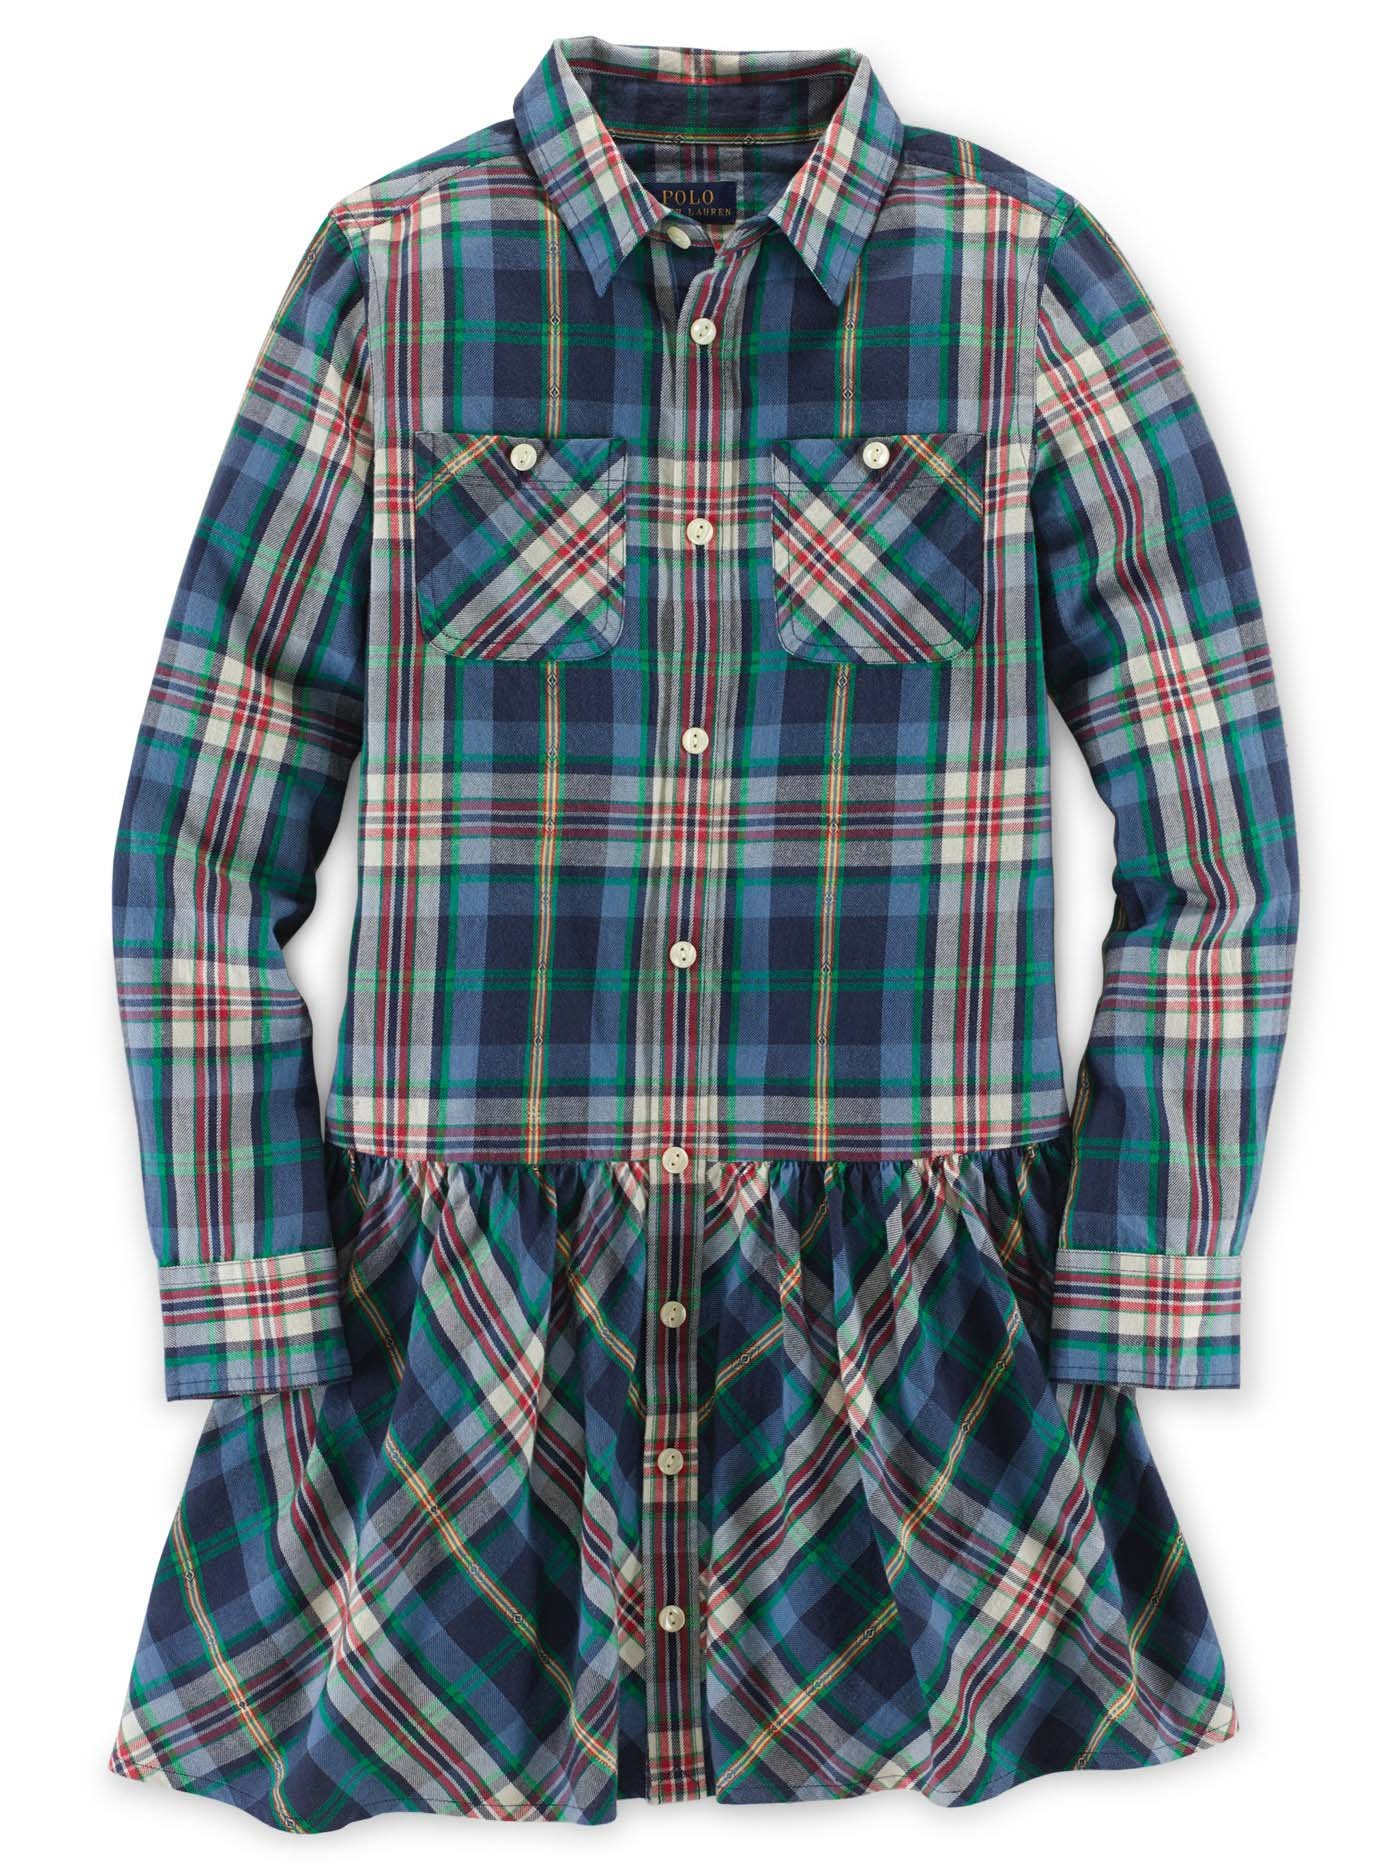 Ralph Lauren Polo Girls Plaid Shirtdress Shirt Dress 7